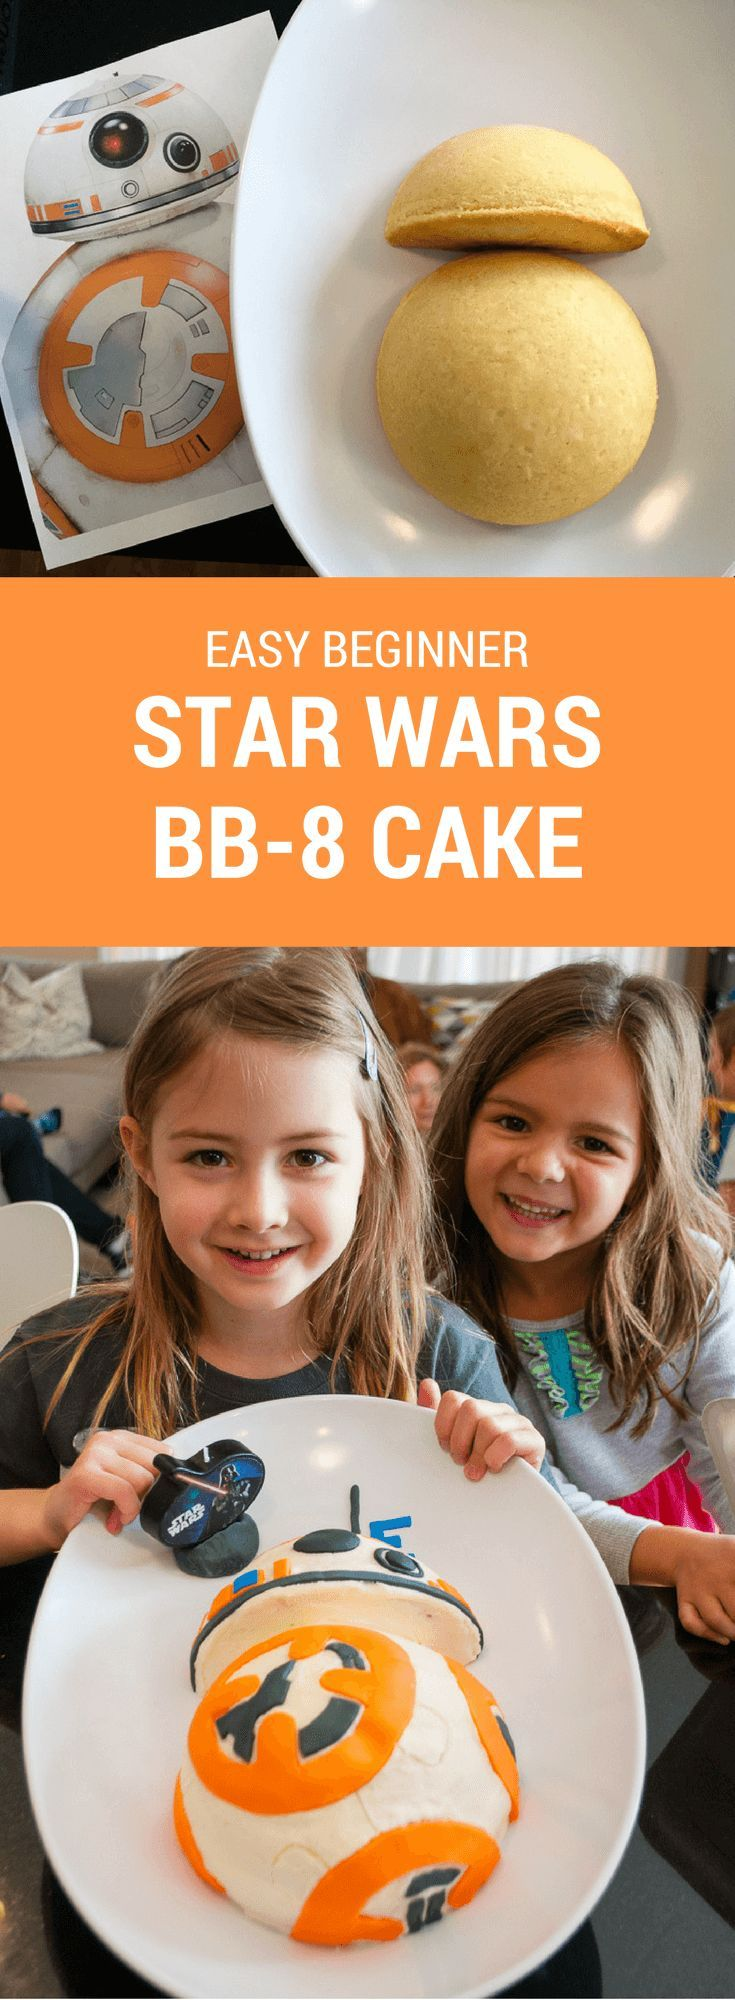 How to make an easy Star Wars BB-8 birthday cake for a Star Wars birthday party. Just print my free BB-8 pattern and follow the easy steps. Great for beginners!